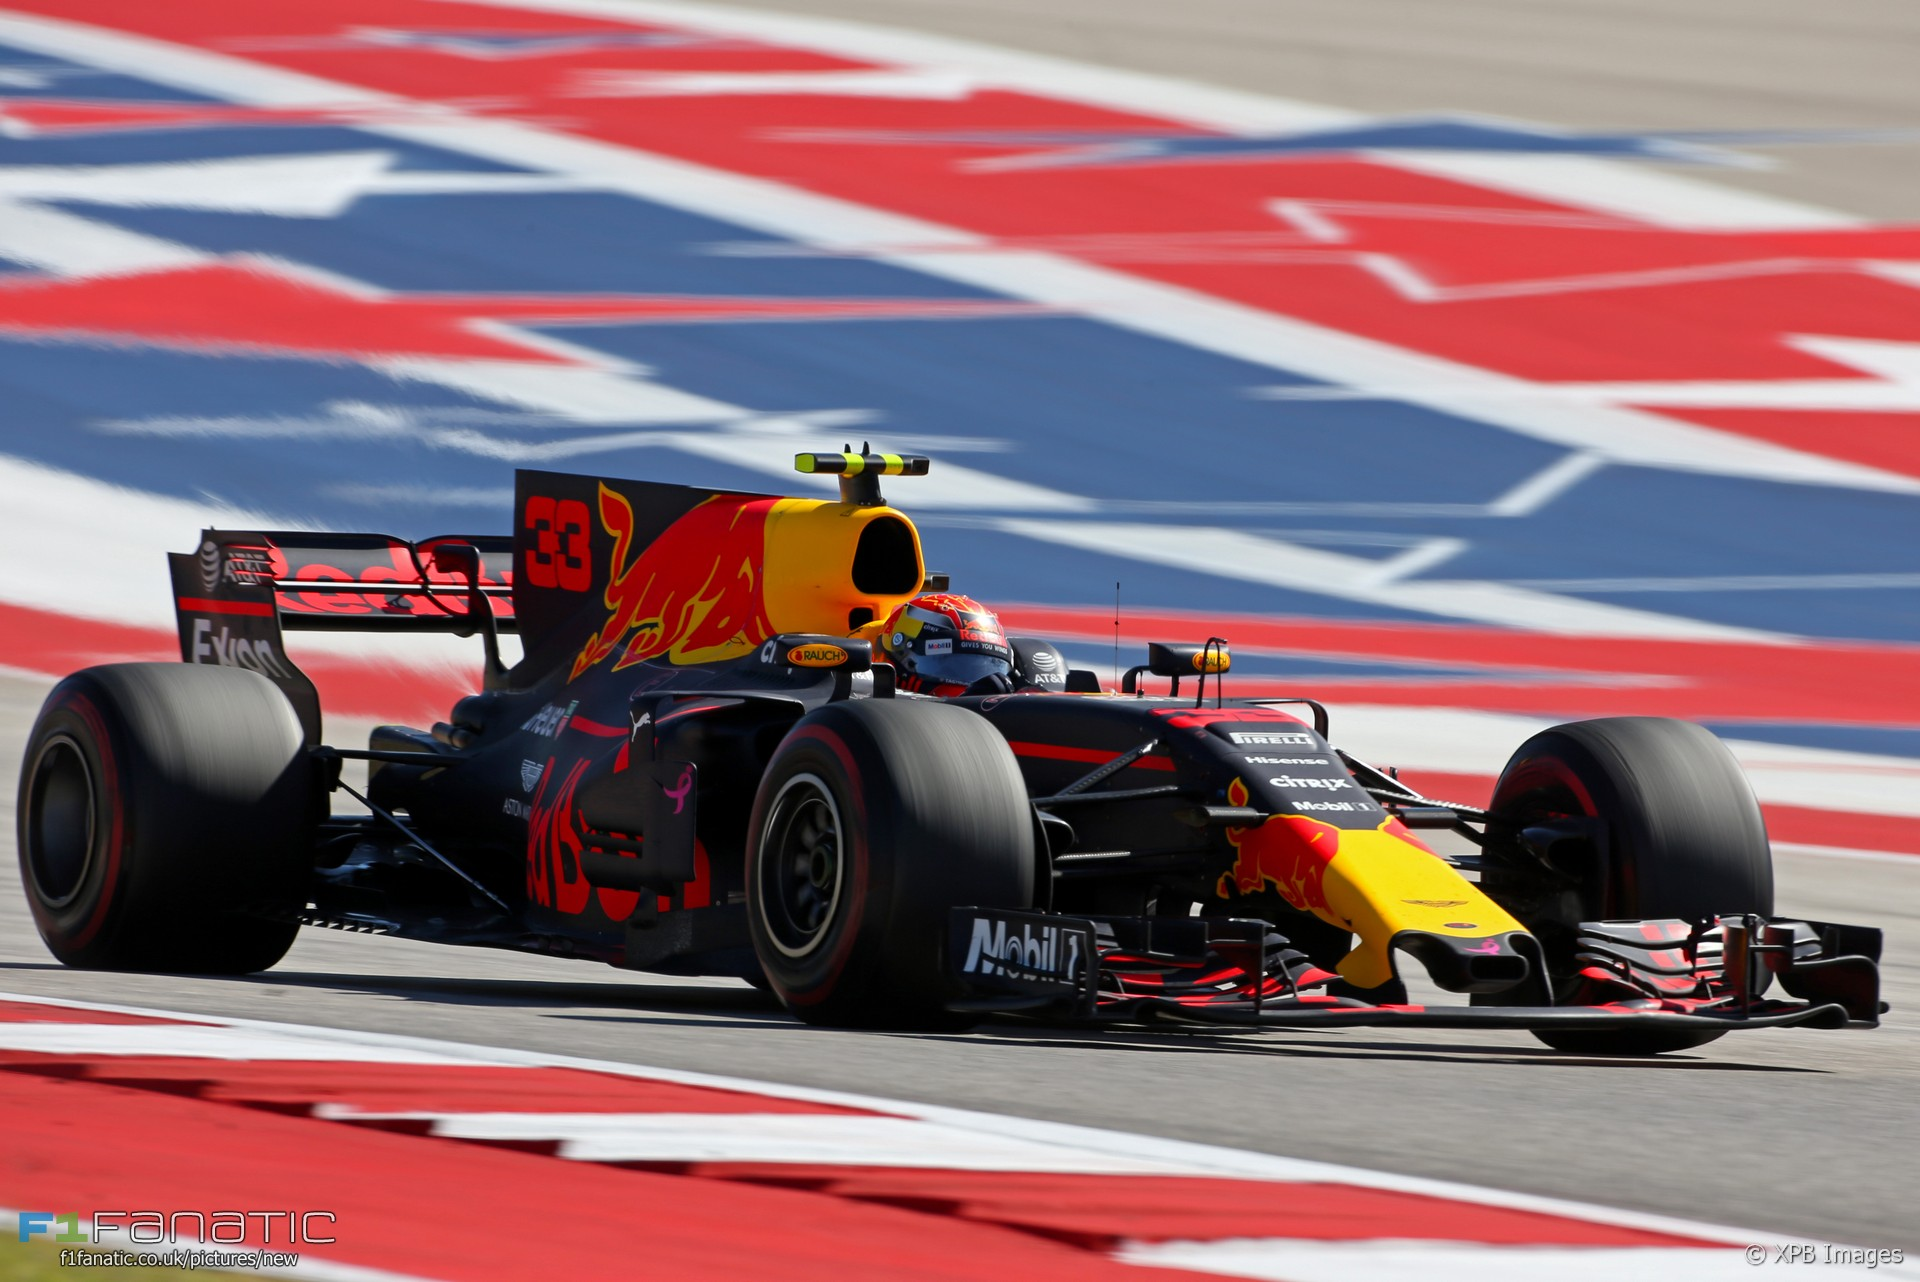 Max Verstappen, Circuit of the Americas, Red Bull, 2017